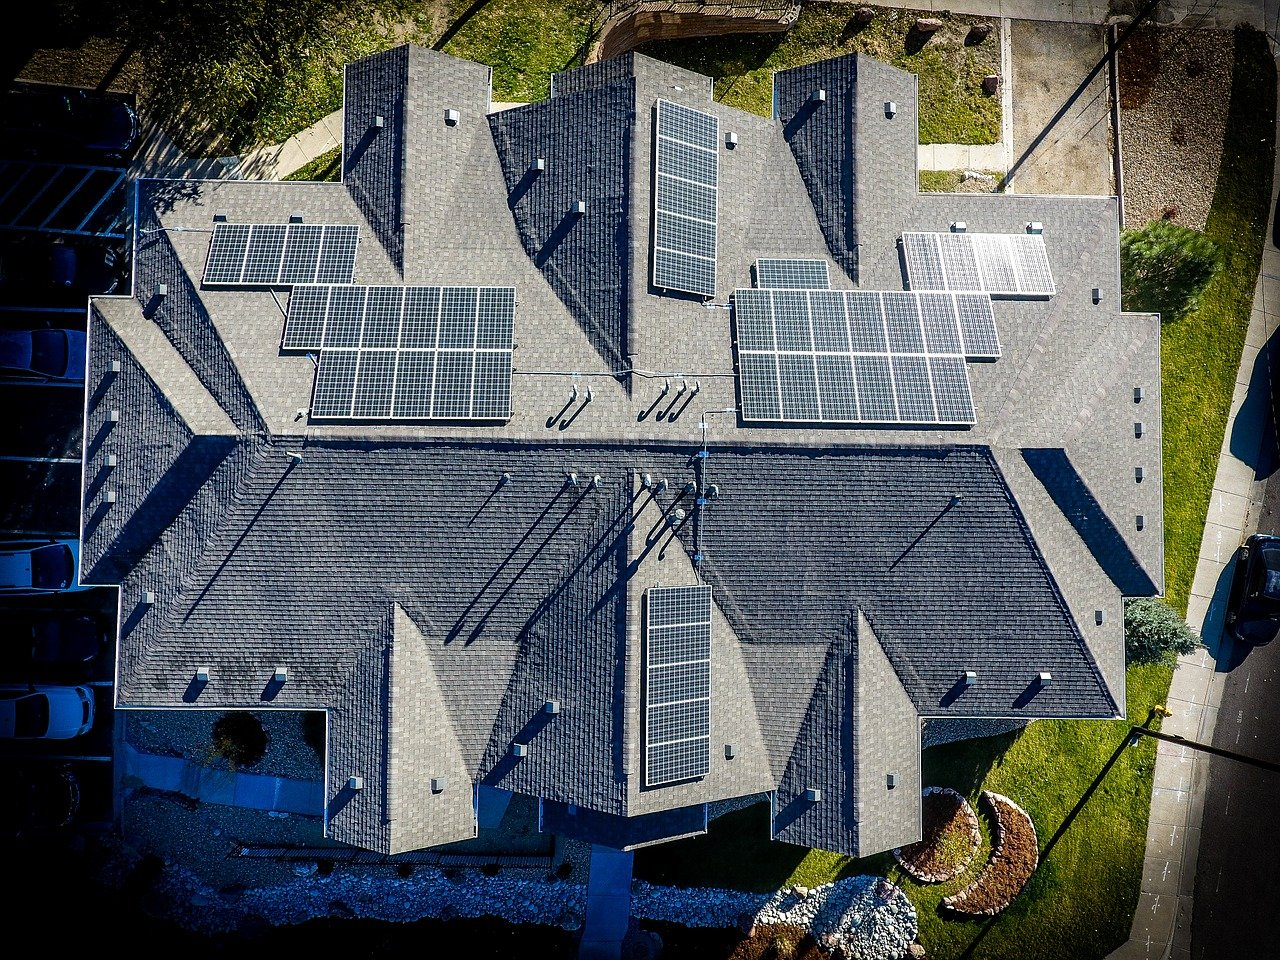 EnergyFlexHouse – Energy Neutral Concept House to Test Solar Collectors and District Heating